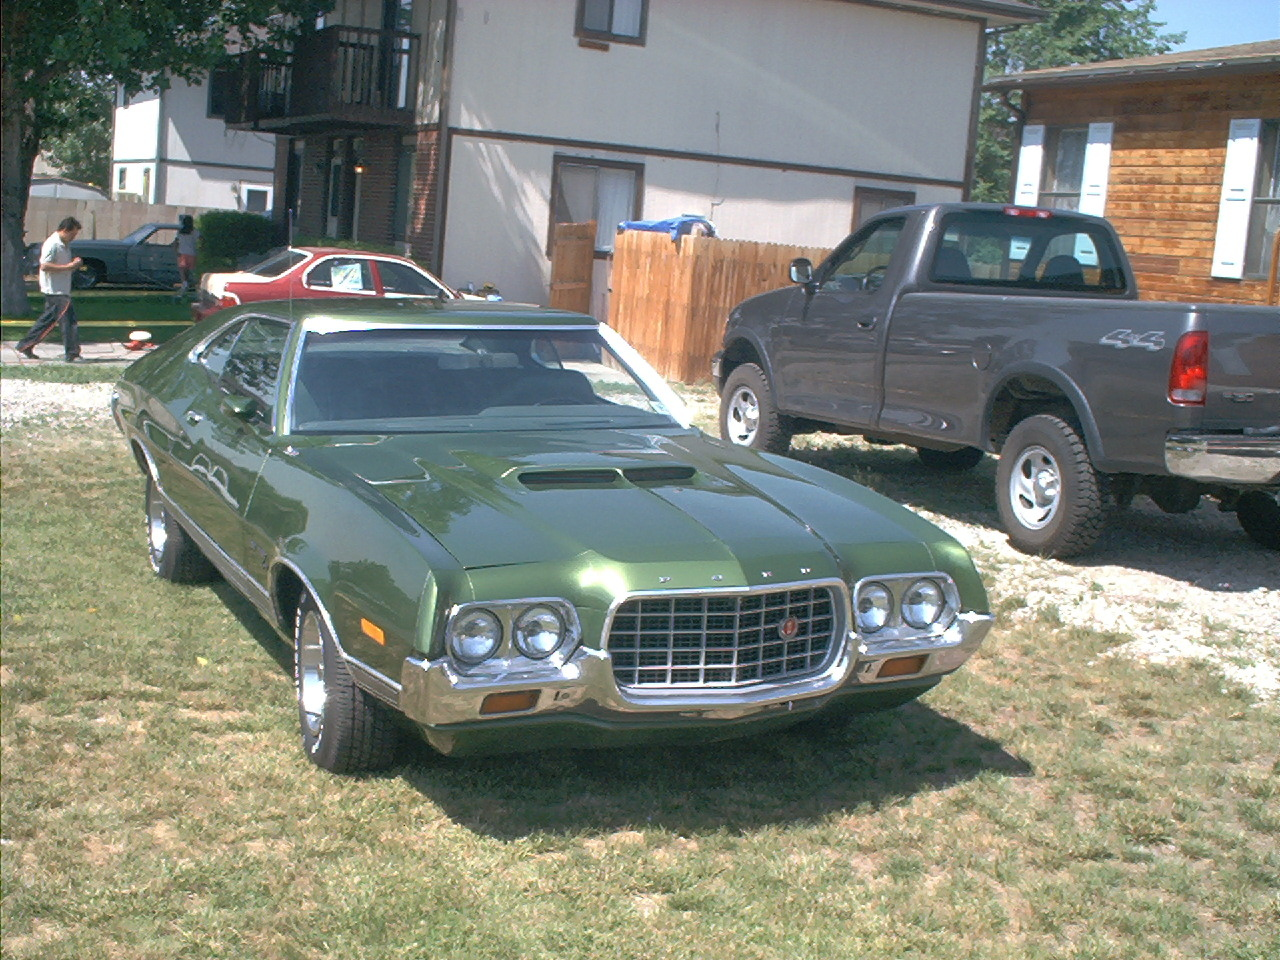 Ford Torino Questions - need parts for 72 torino - CarGurus